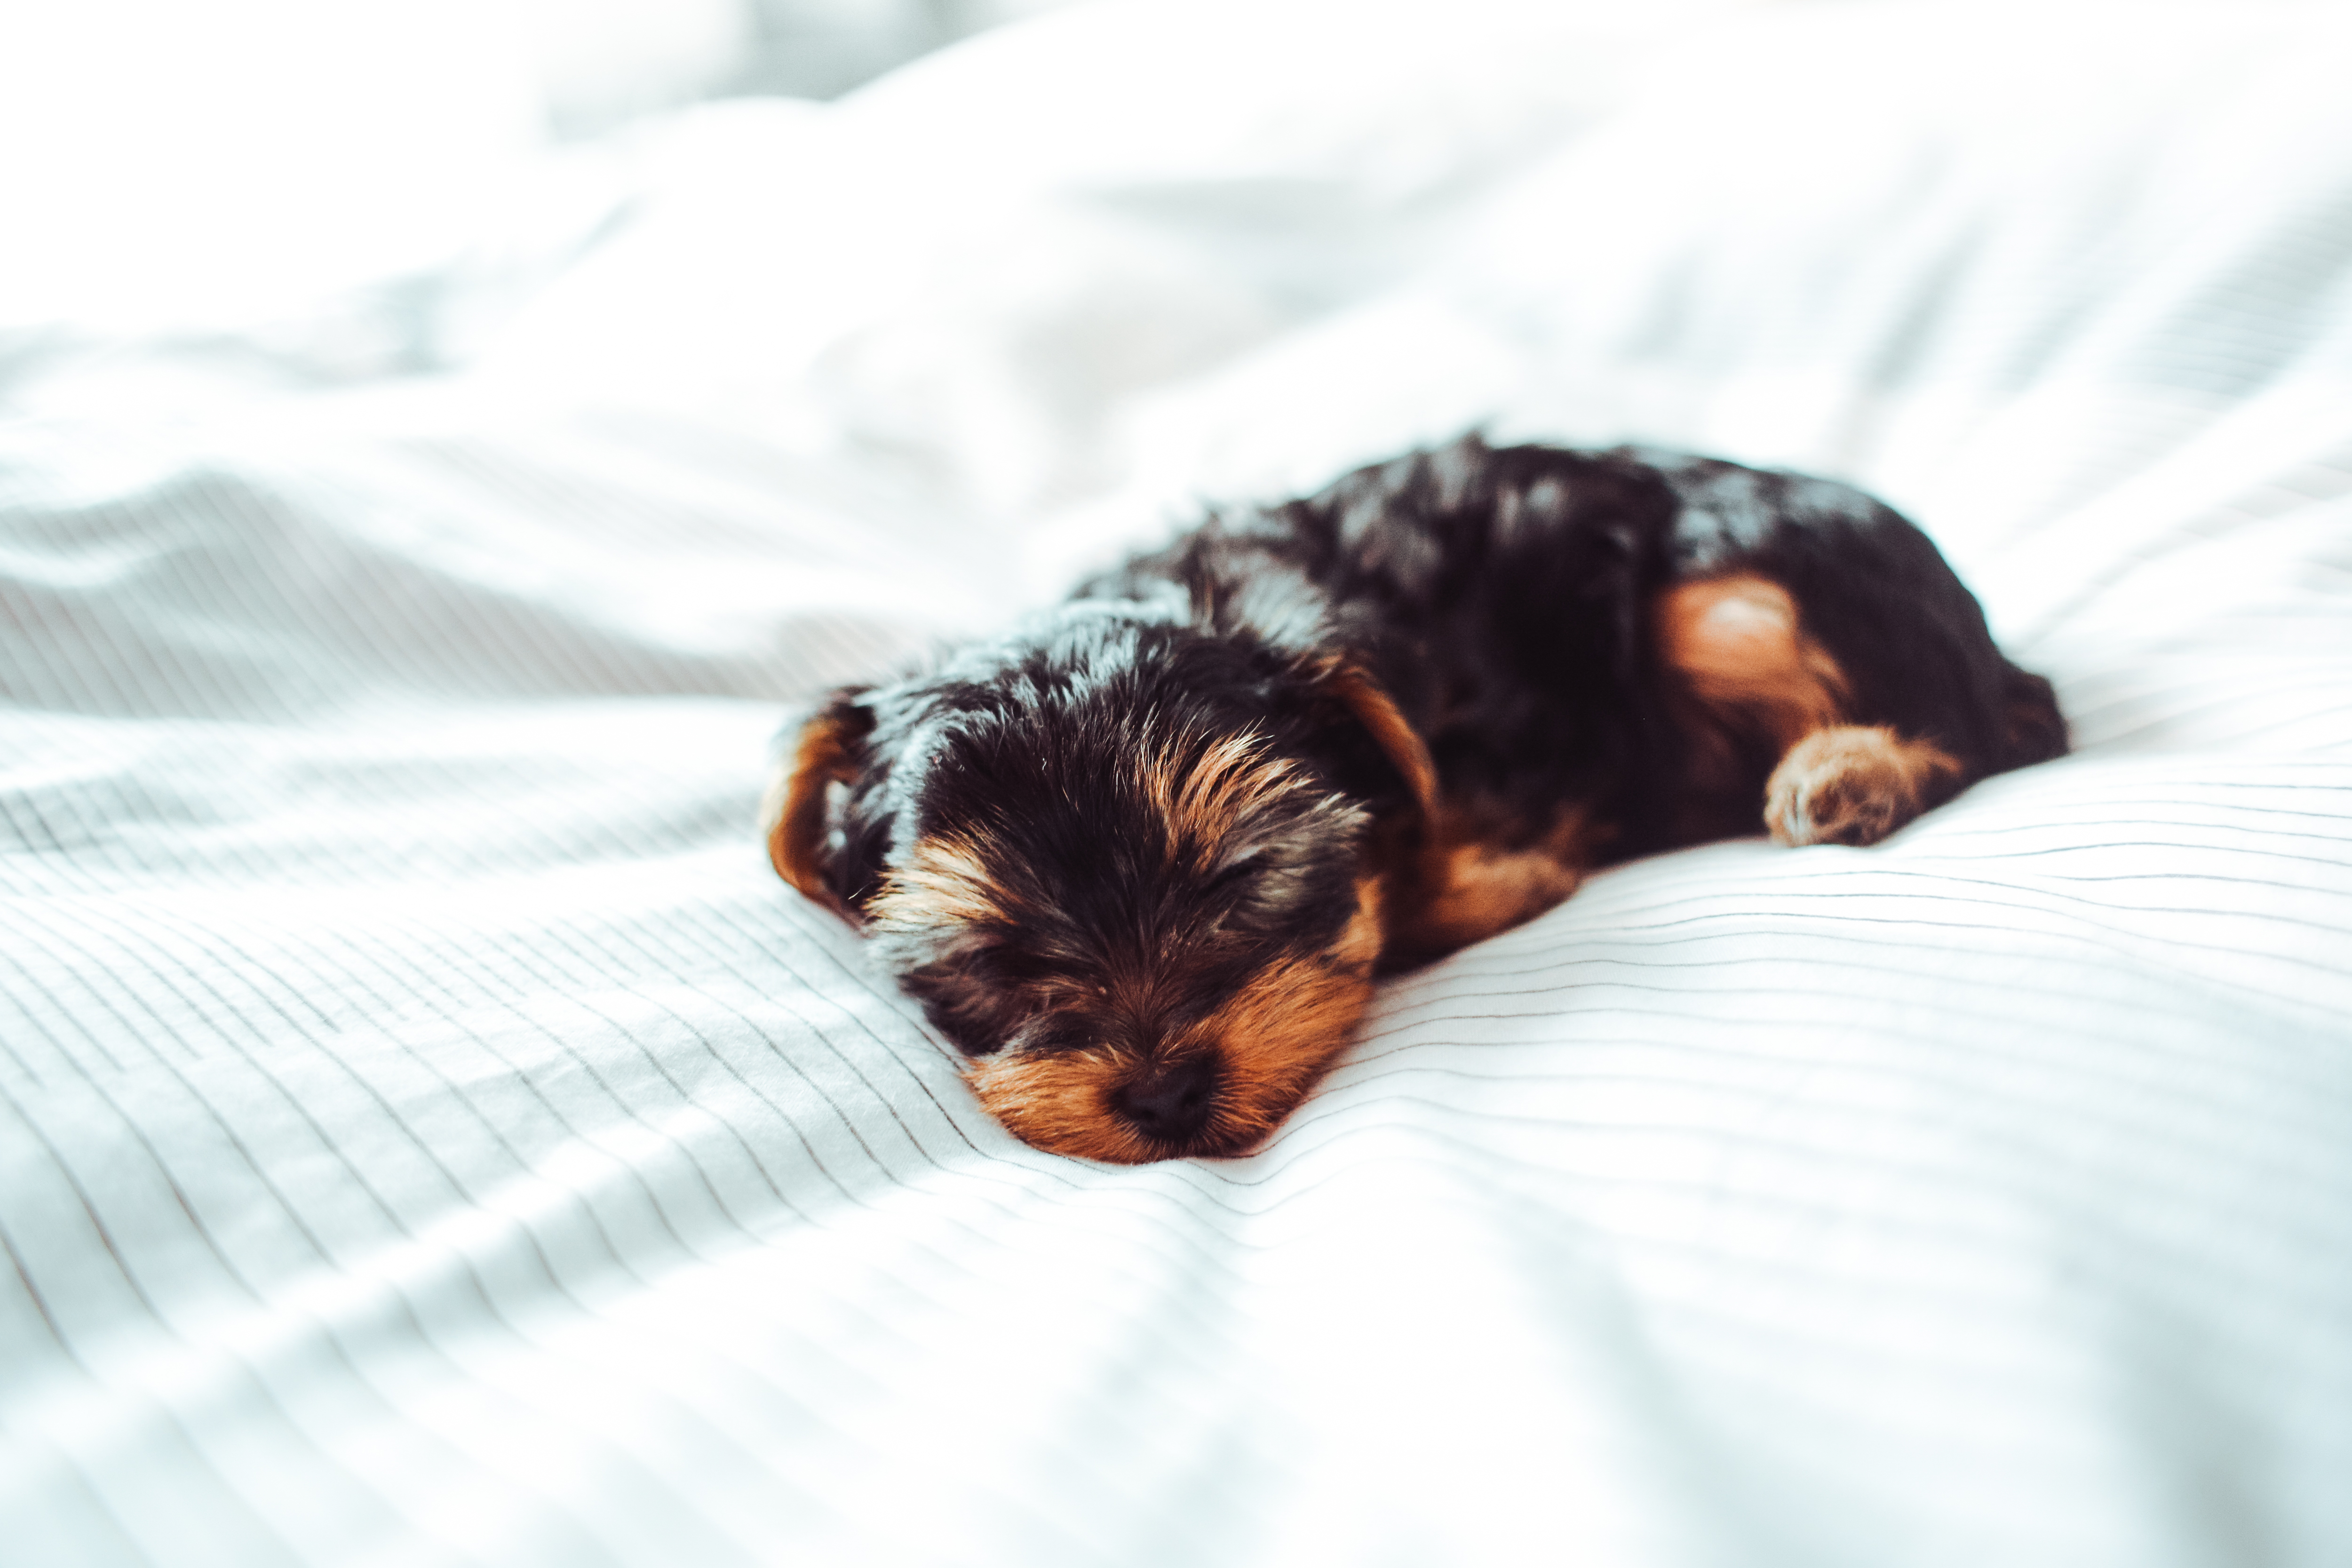 adorable-sleeping-yorkshire-terrier-puppy-picjumbo-com.jpg